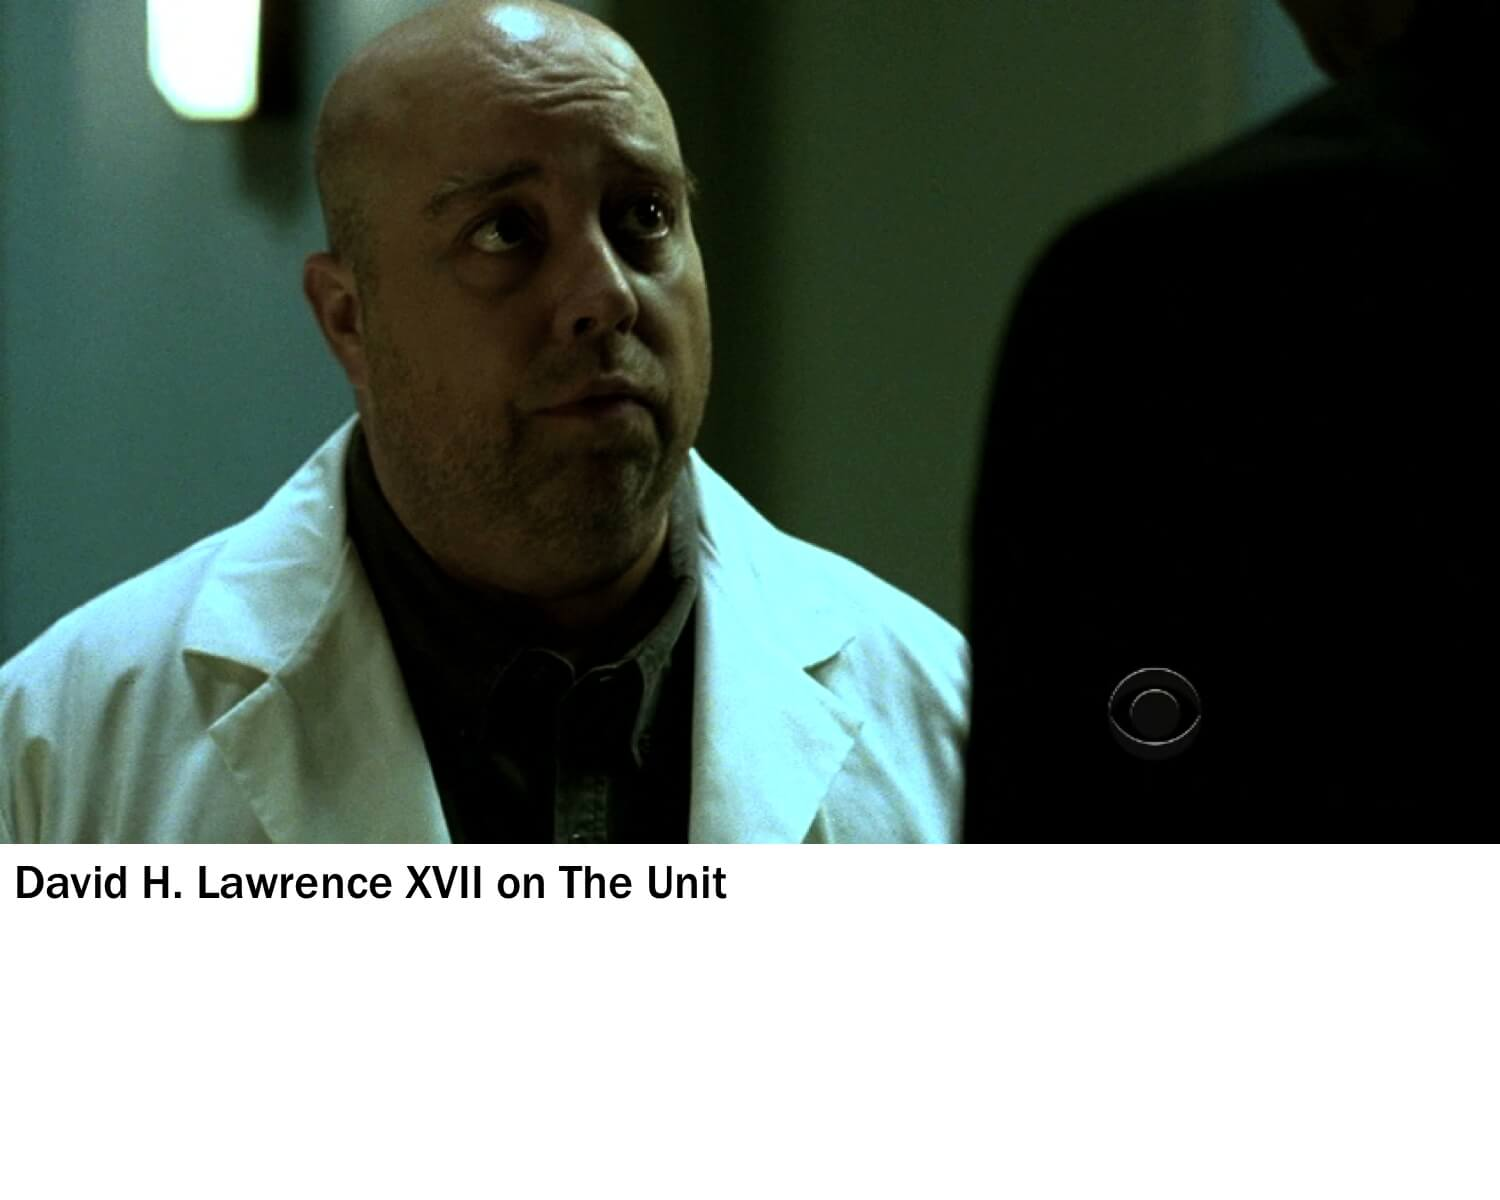 2015-dhlawrencexvii-30-theunit-doctor